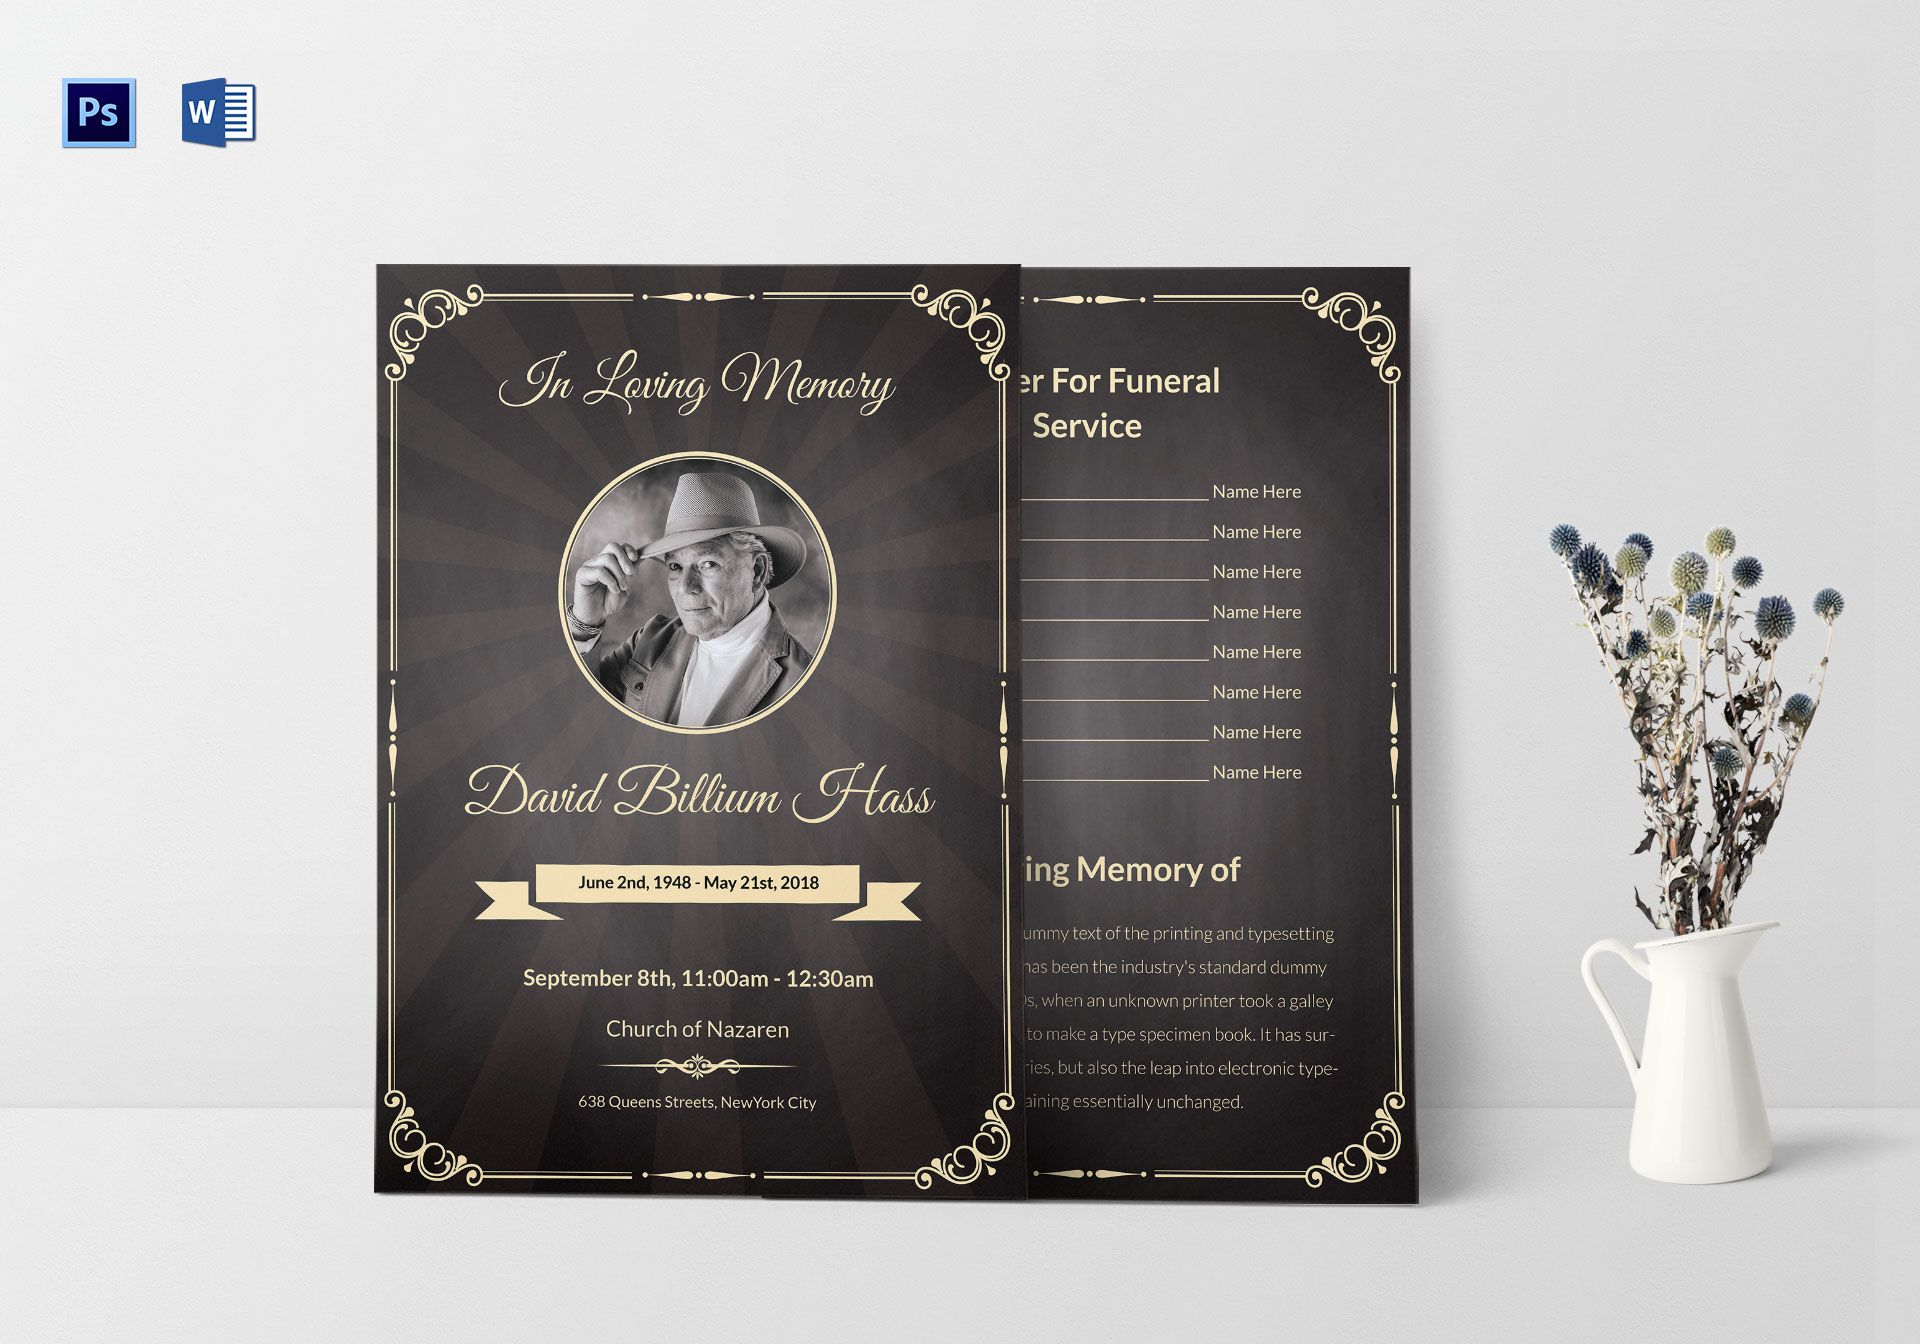 Funeral Invitation Pamphlet Template In Adobe Photoshop Microsoft Word